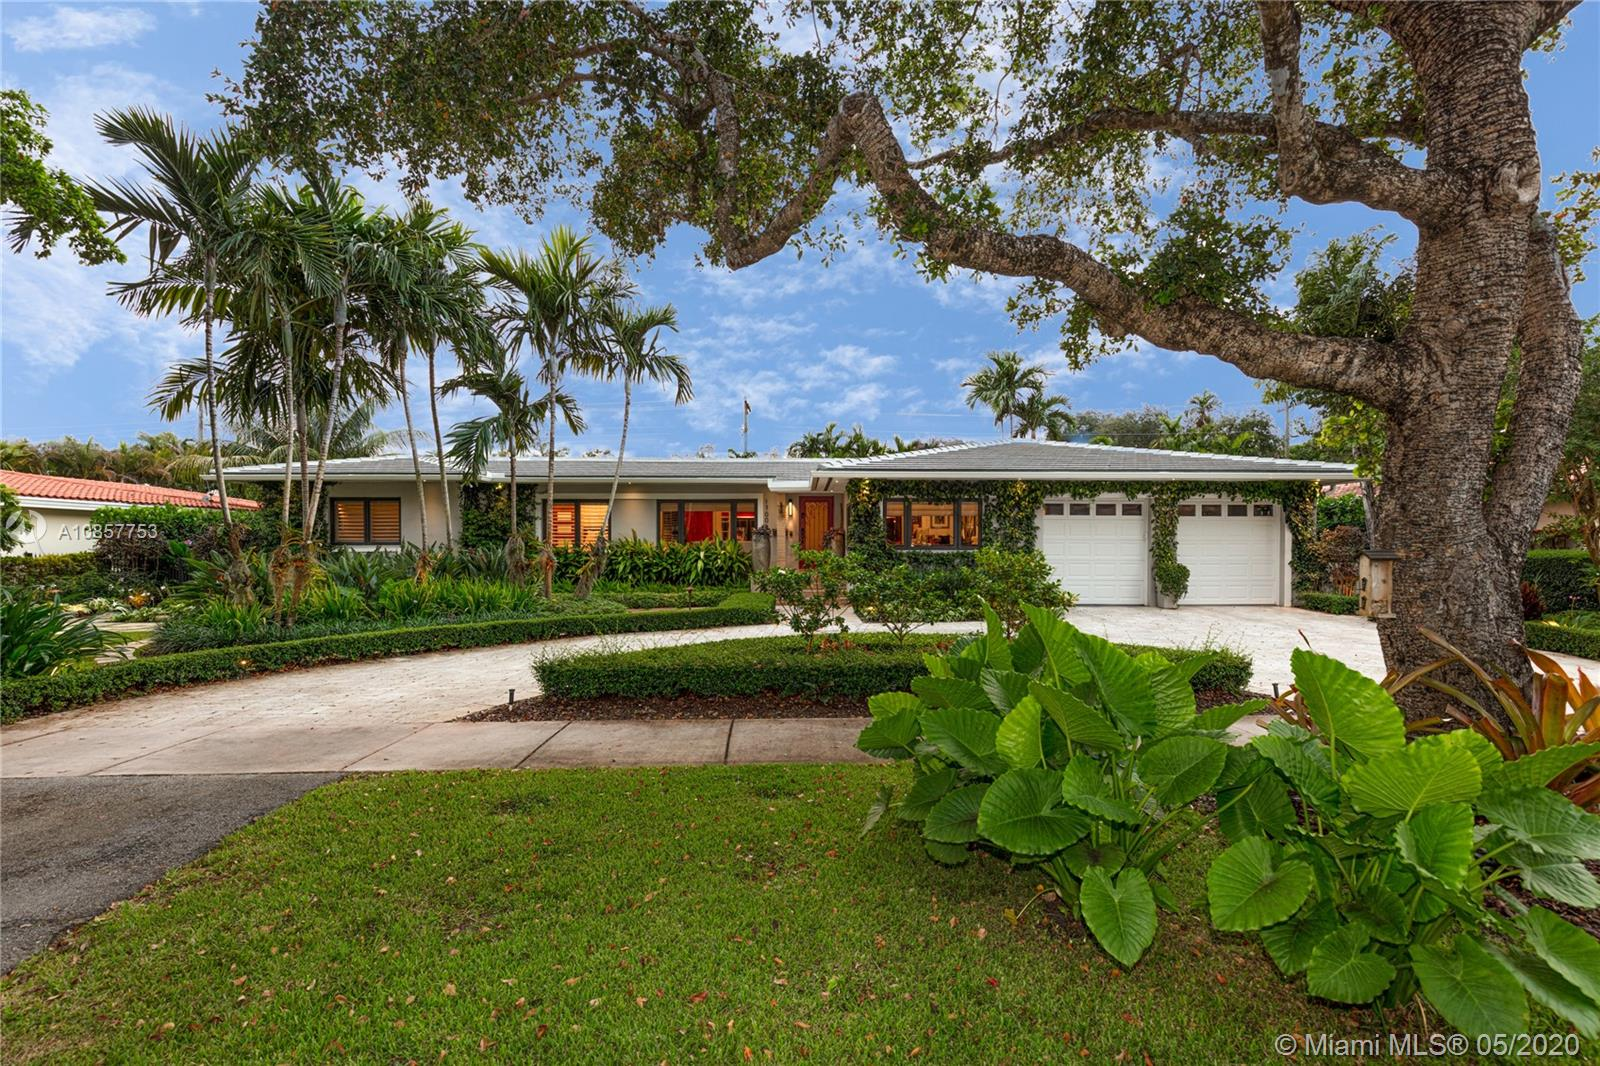 1700 Ferdinand St, Coral Gables, Florida 33134, 3 Bedrooms Bedrooms, ,3 BathroomsBathrooms,Residential,For Sale,1700 Ferdinand St,A10857753